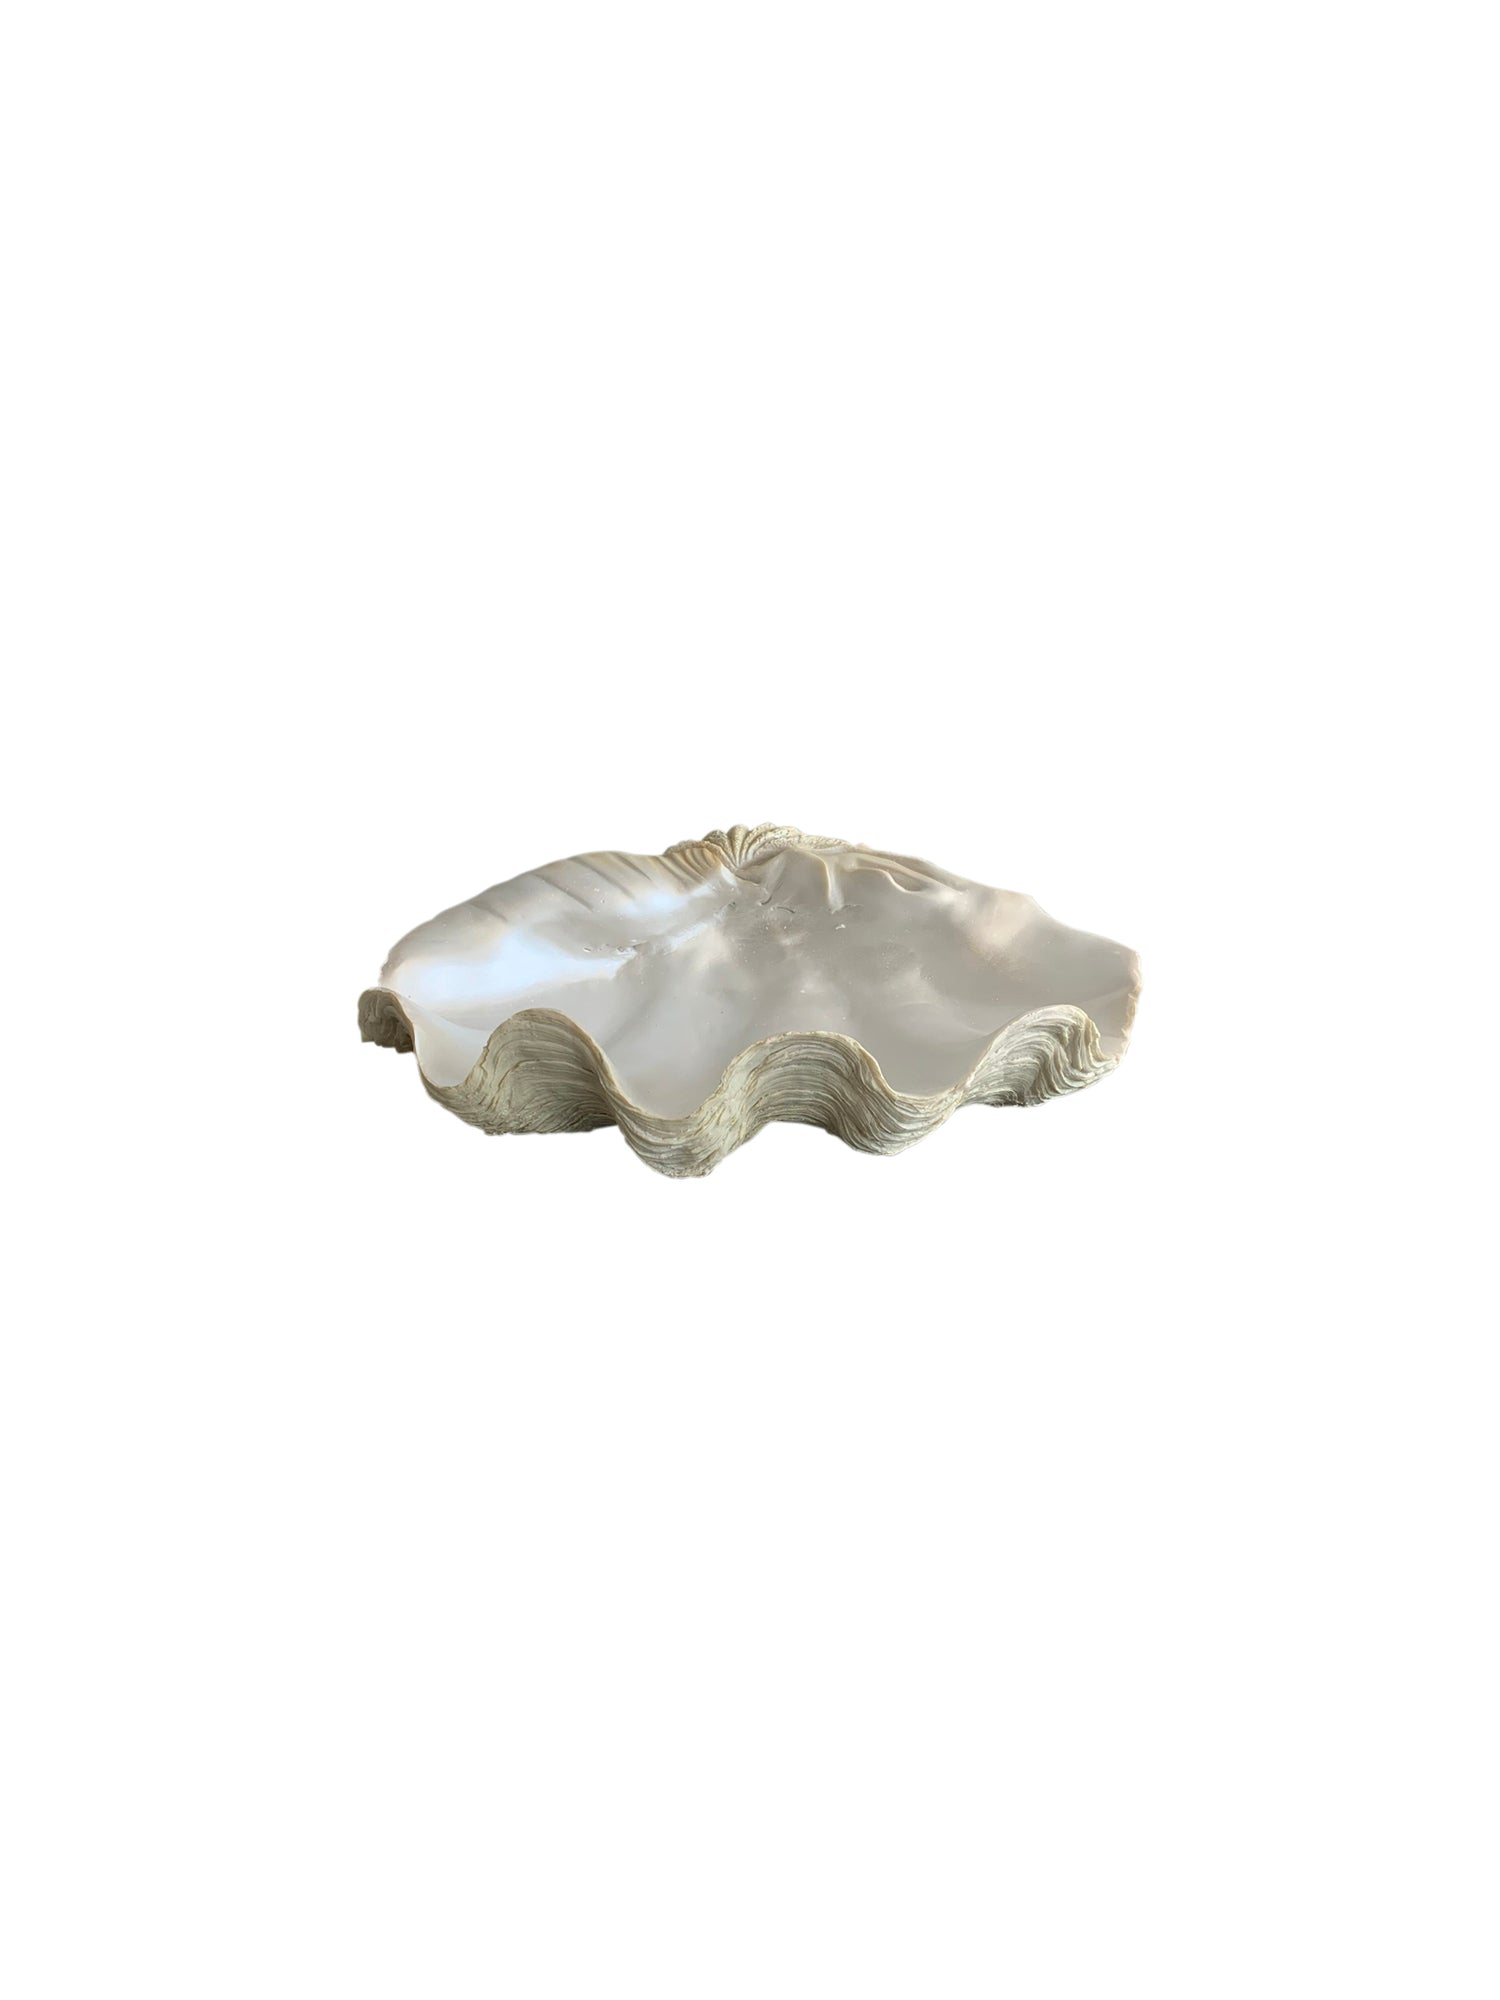 Polyresin Clam Shell